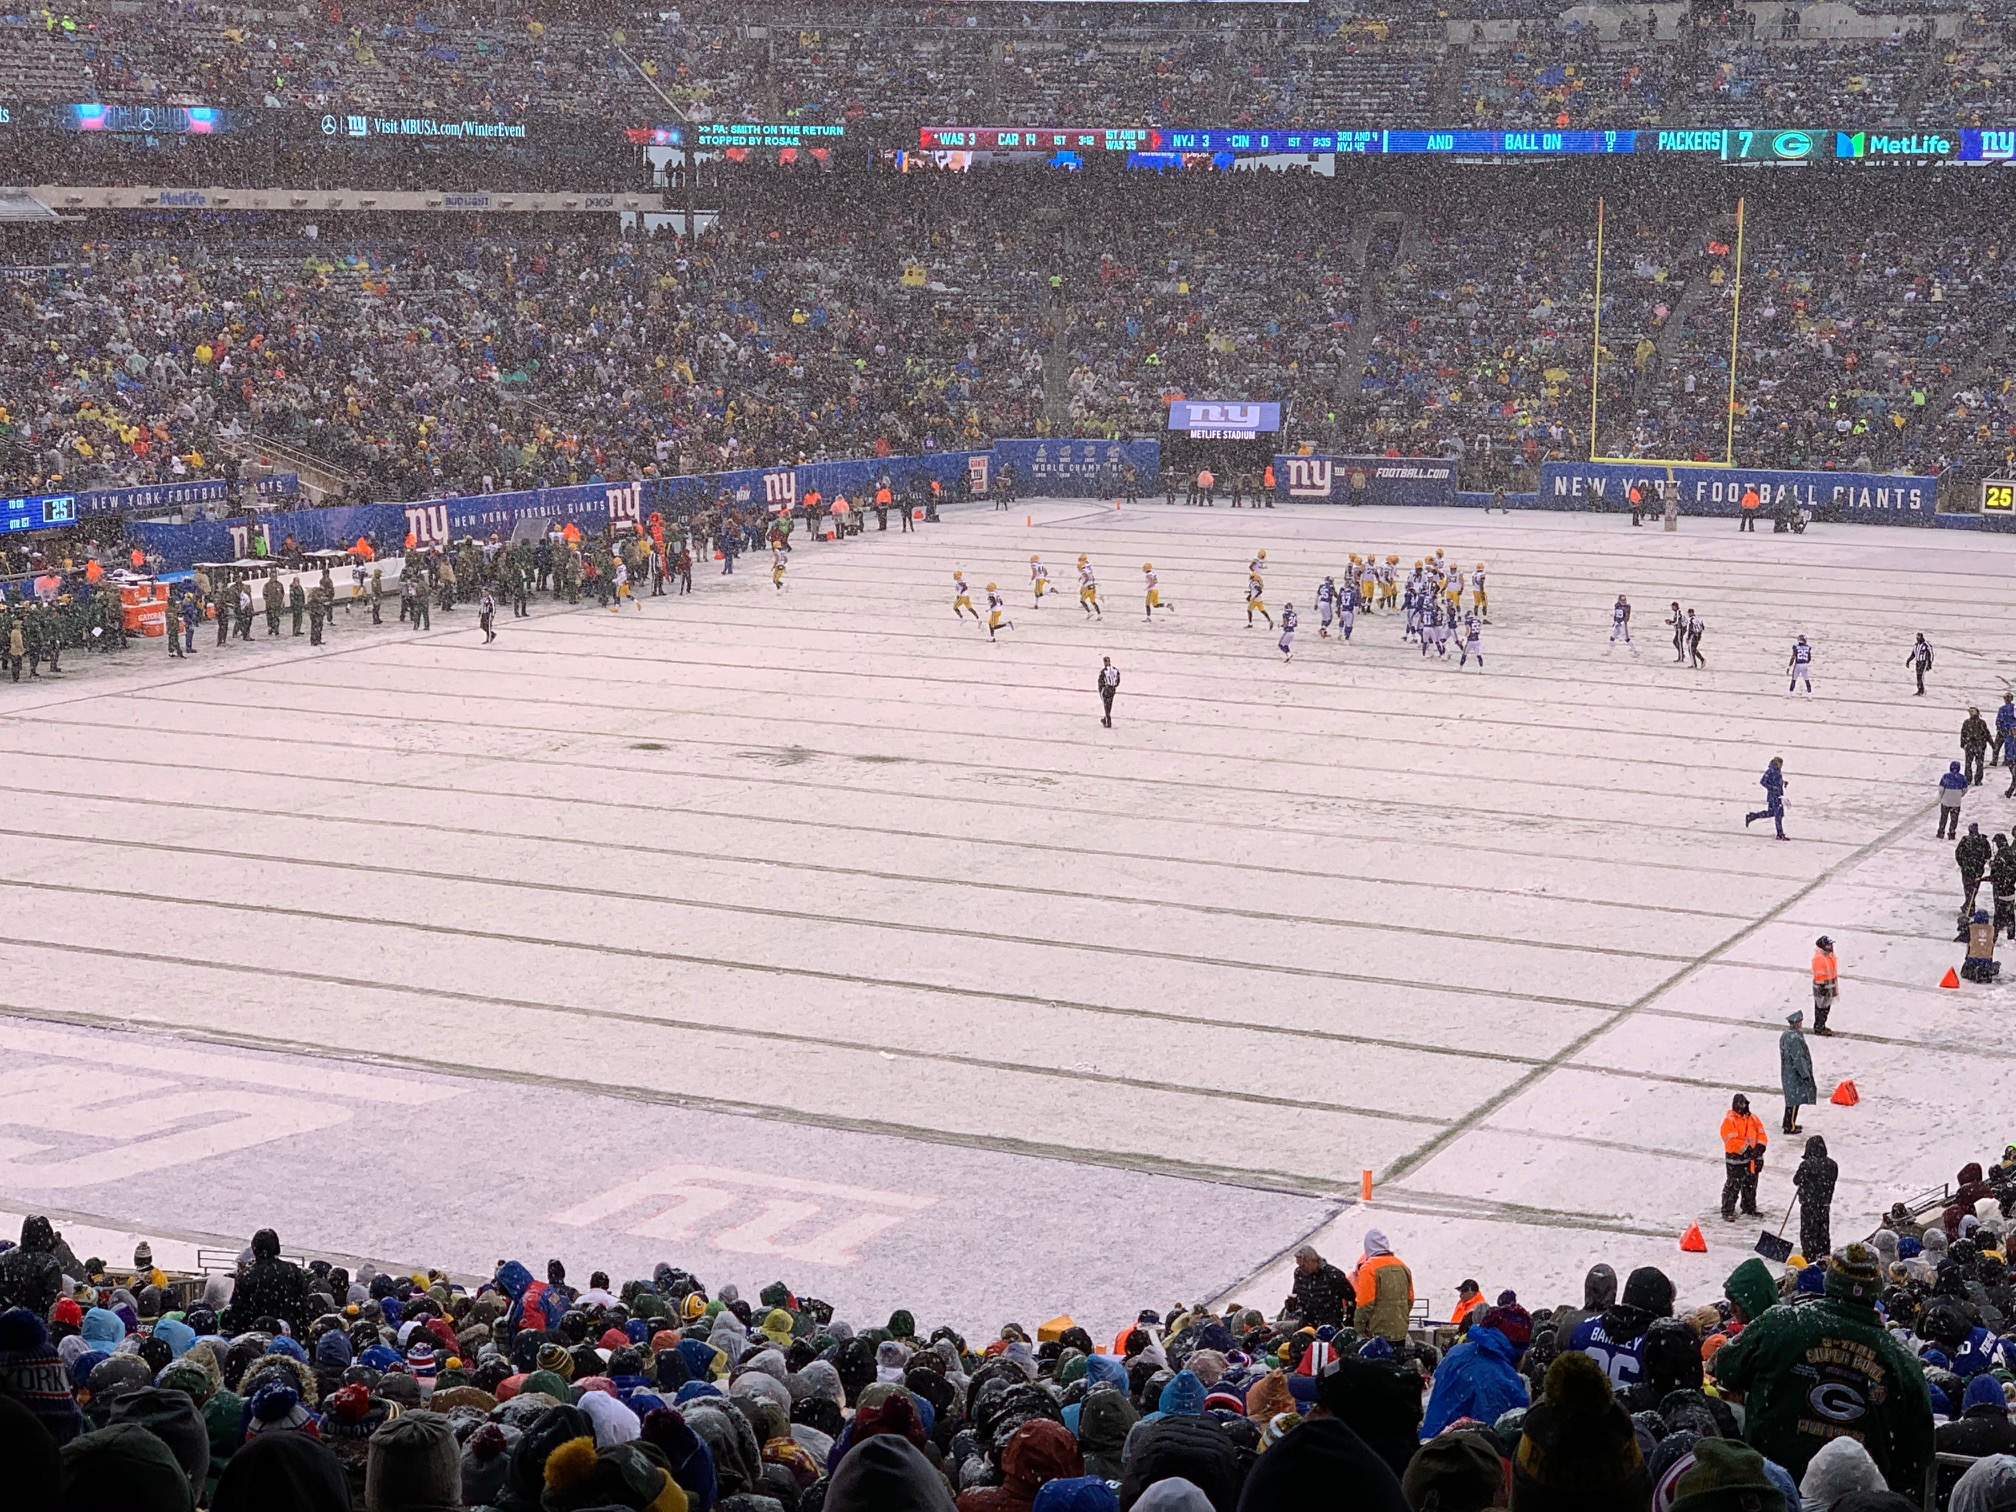 Giants vs. Packers, December 1, 2019